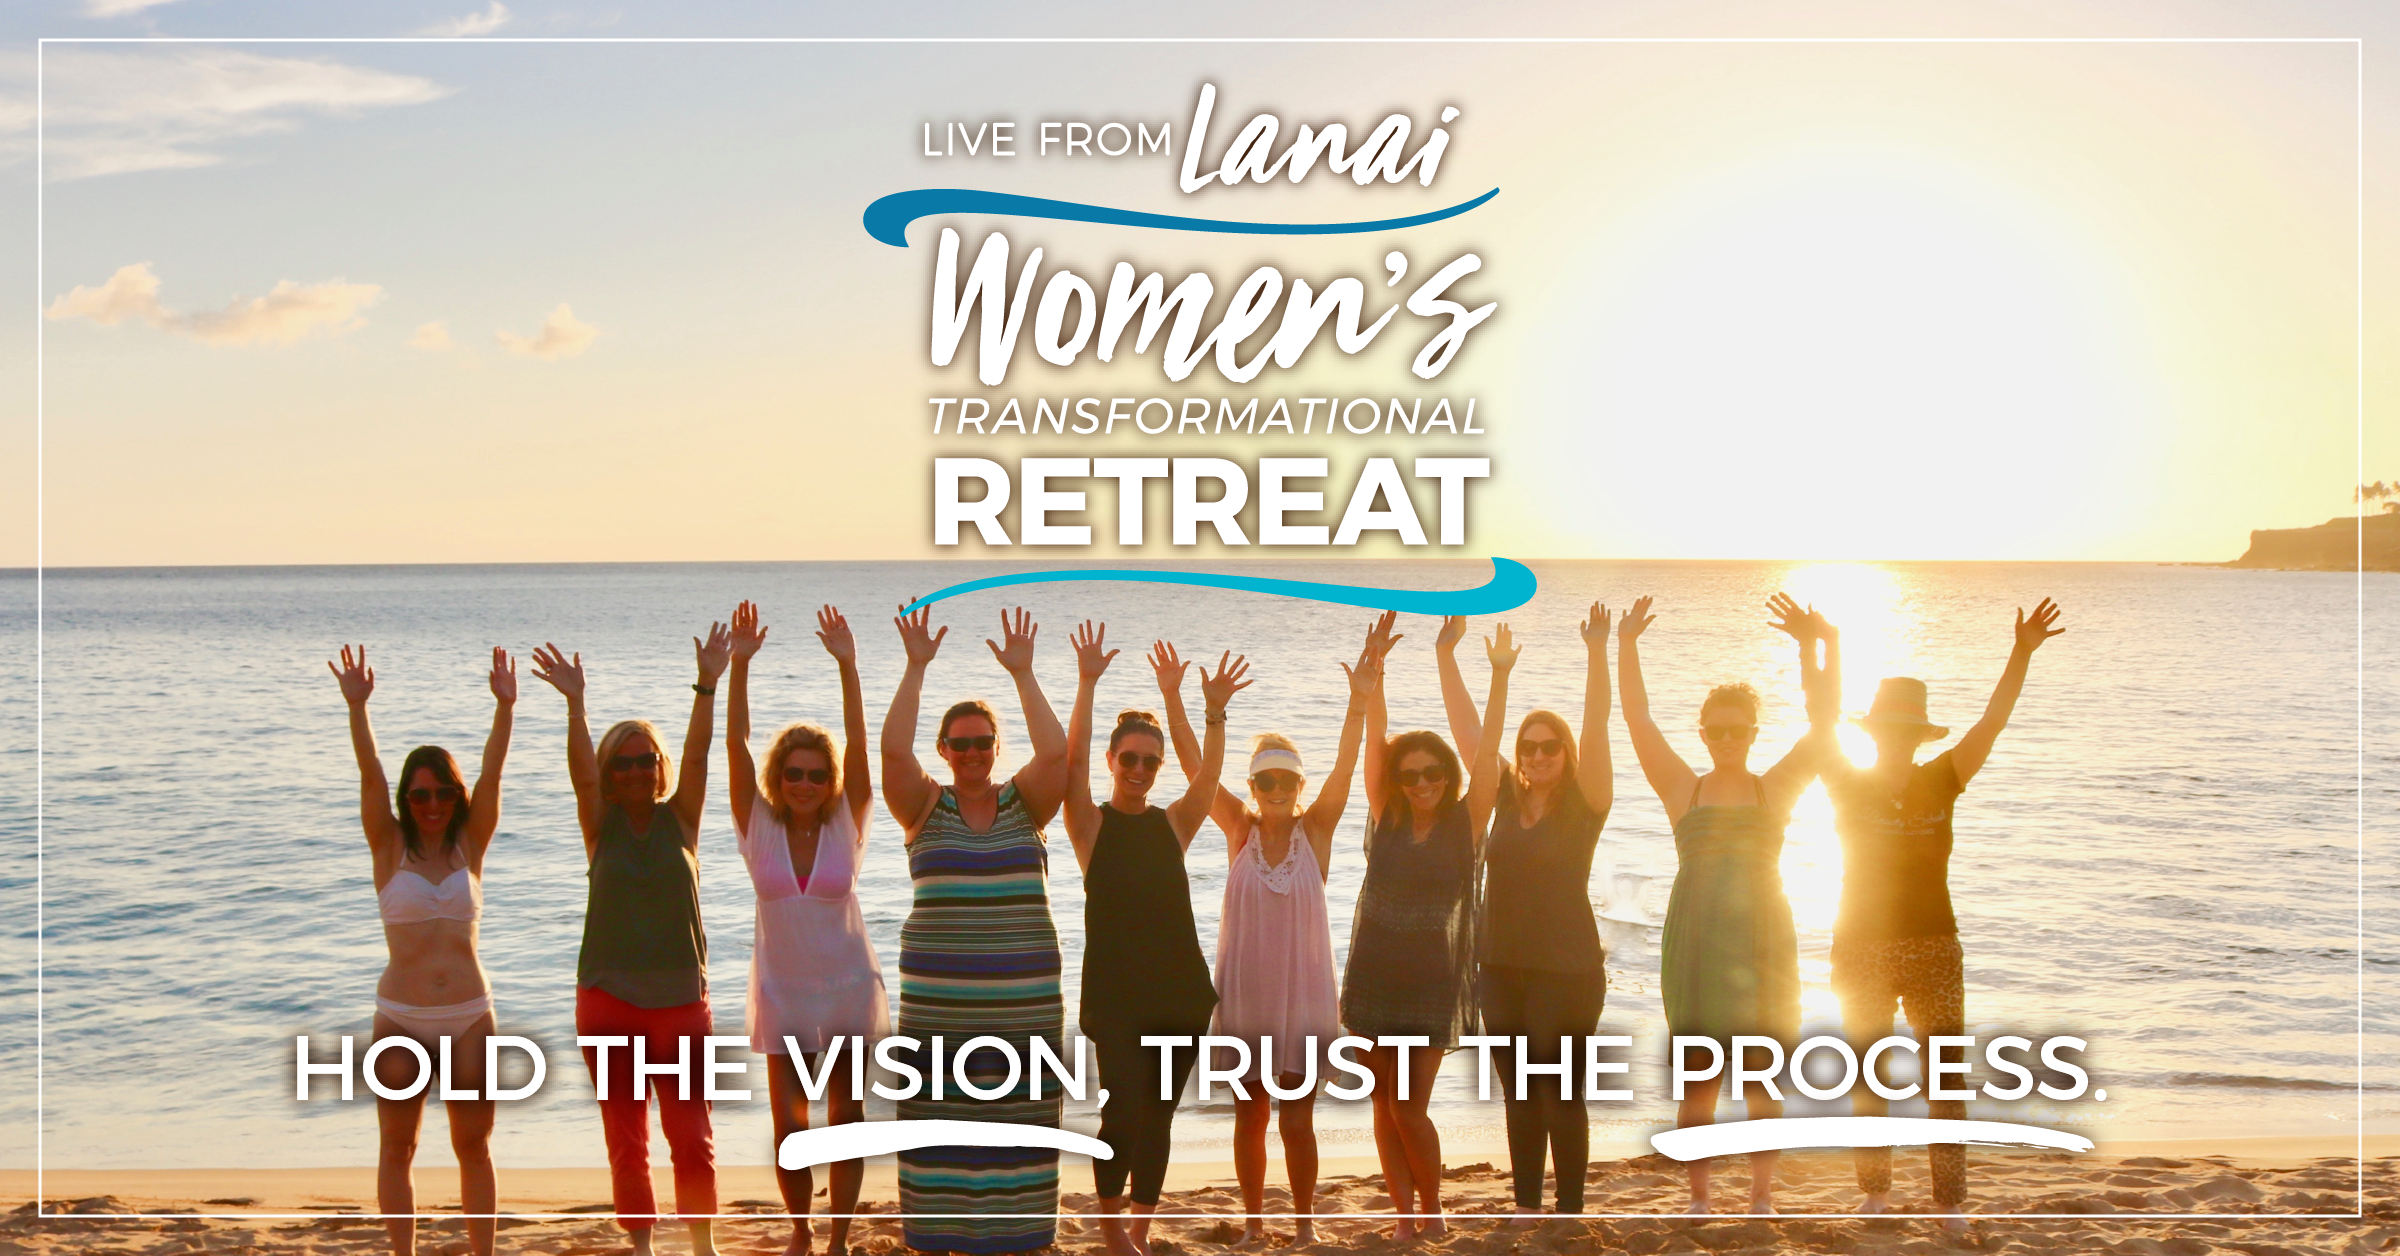 Women's Transformational Retreat Network Marketing MLM Richard Brooke Kimmy Brooke